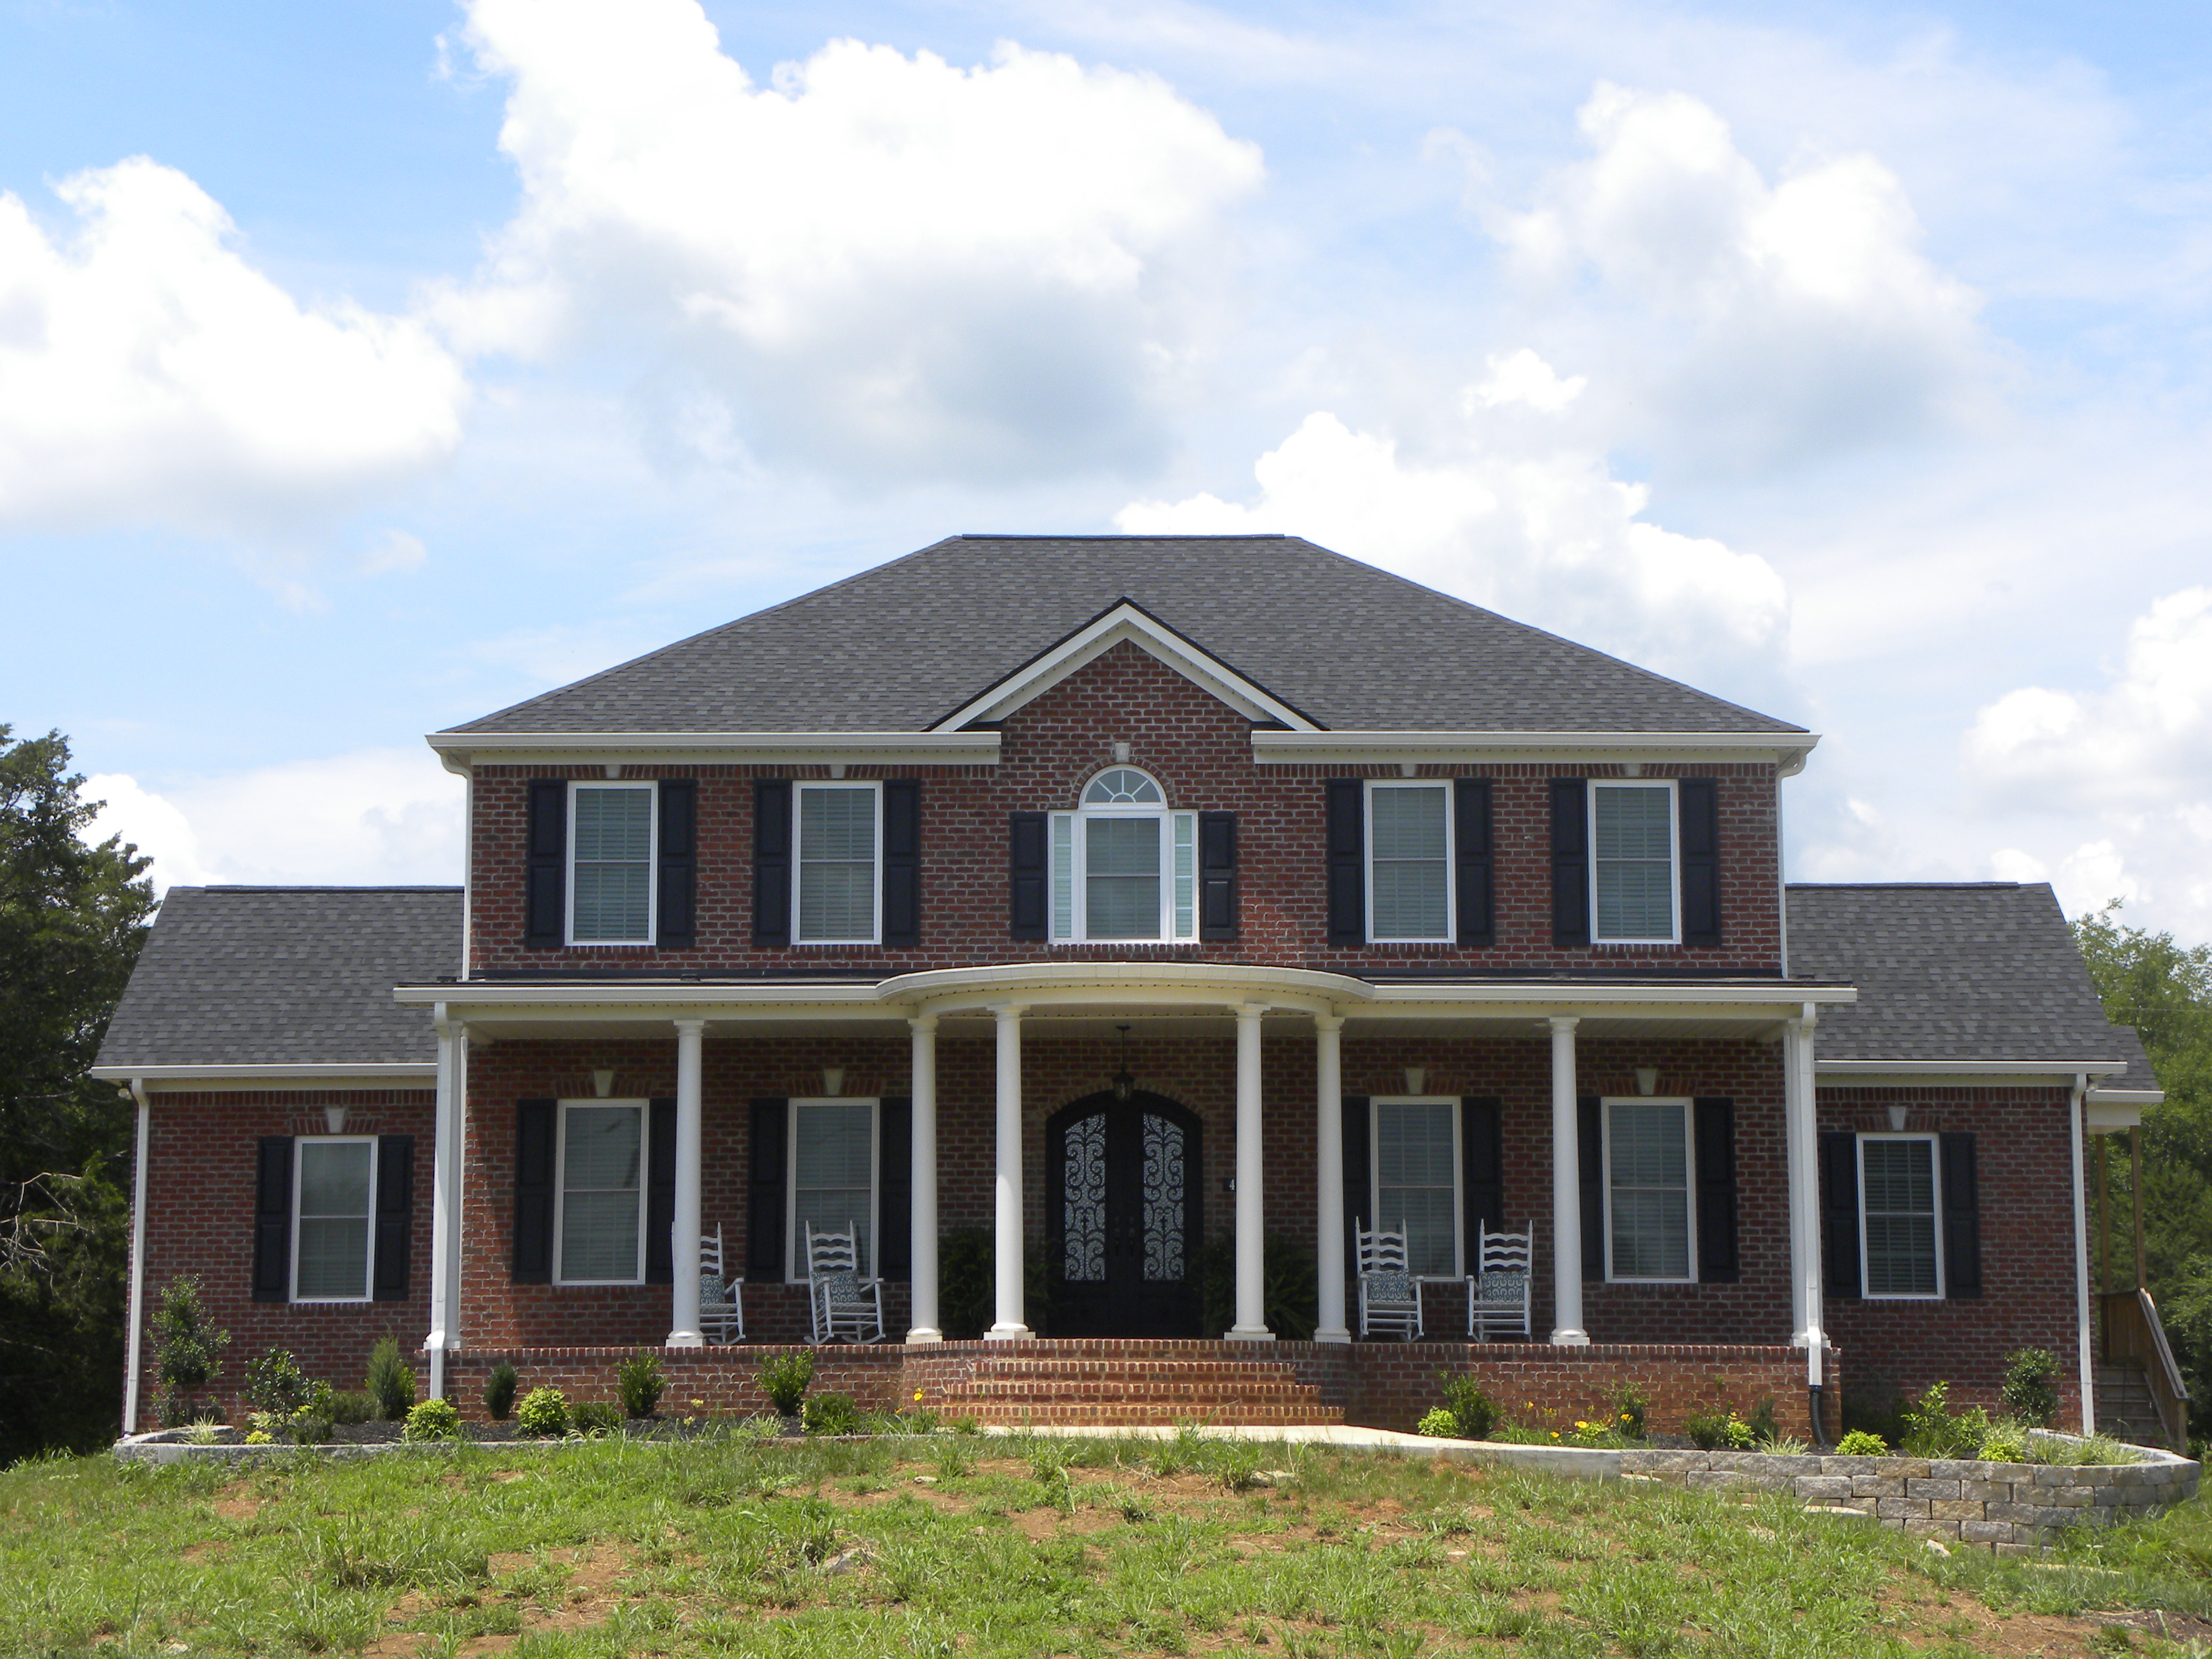 Wilson dream builders inc tennessee home builder for Dream builders homes